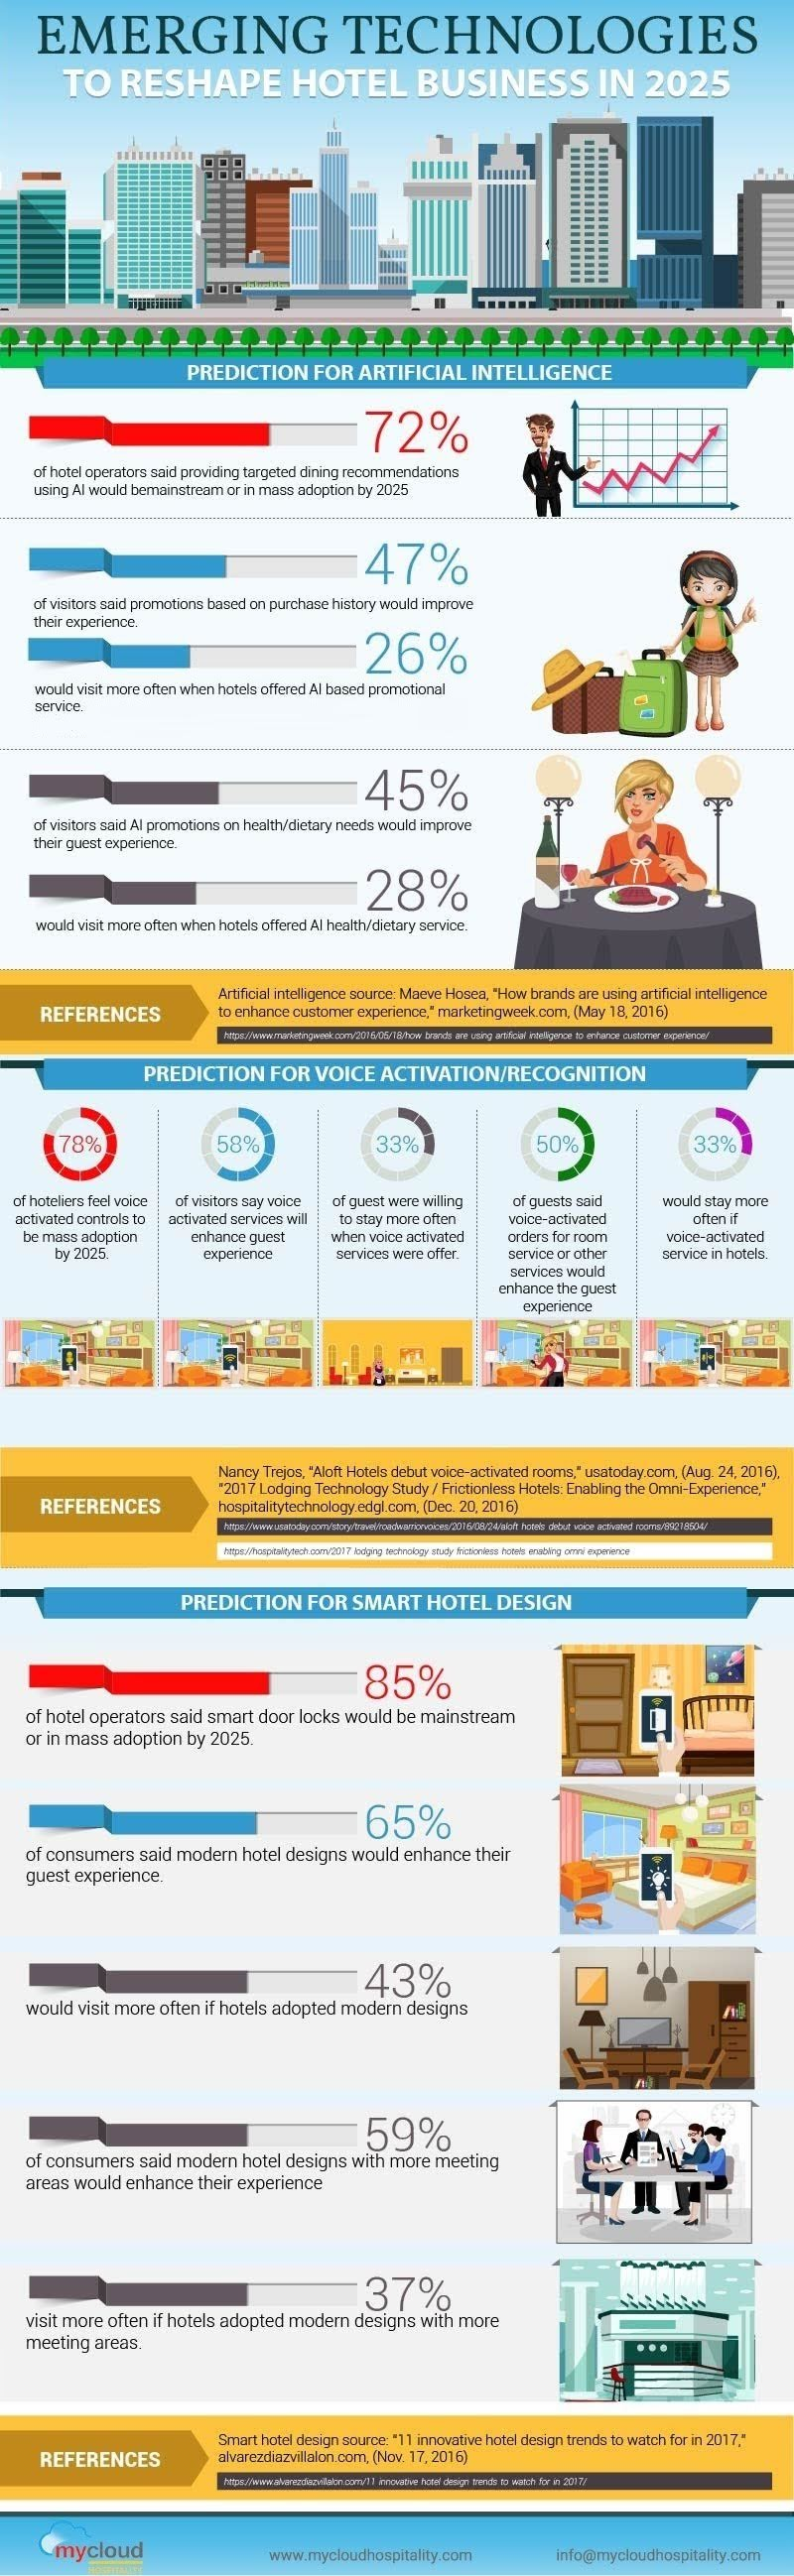 Emerging Hotel Business Technology in 2025 #infographic